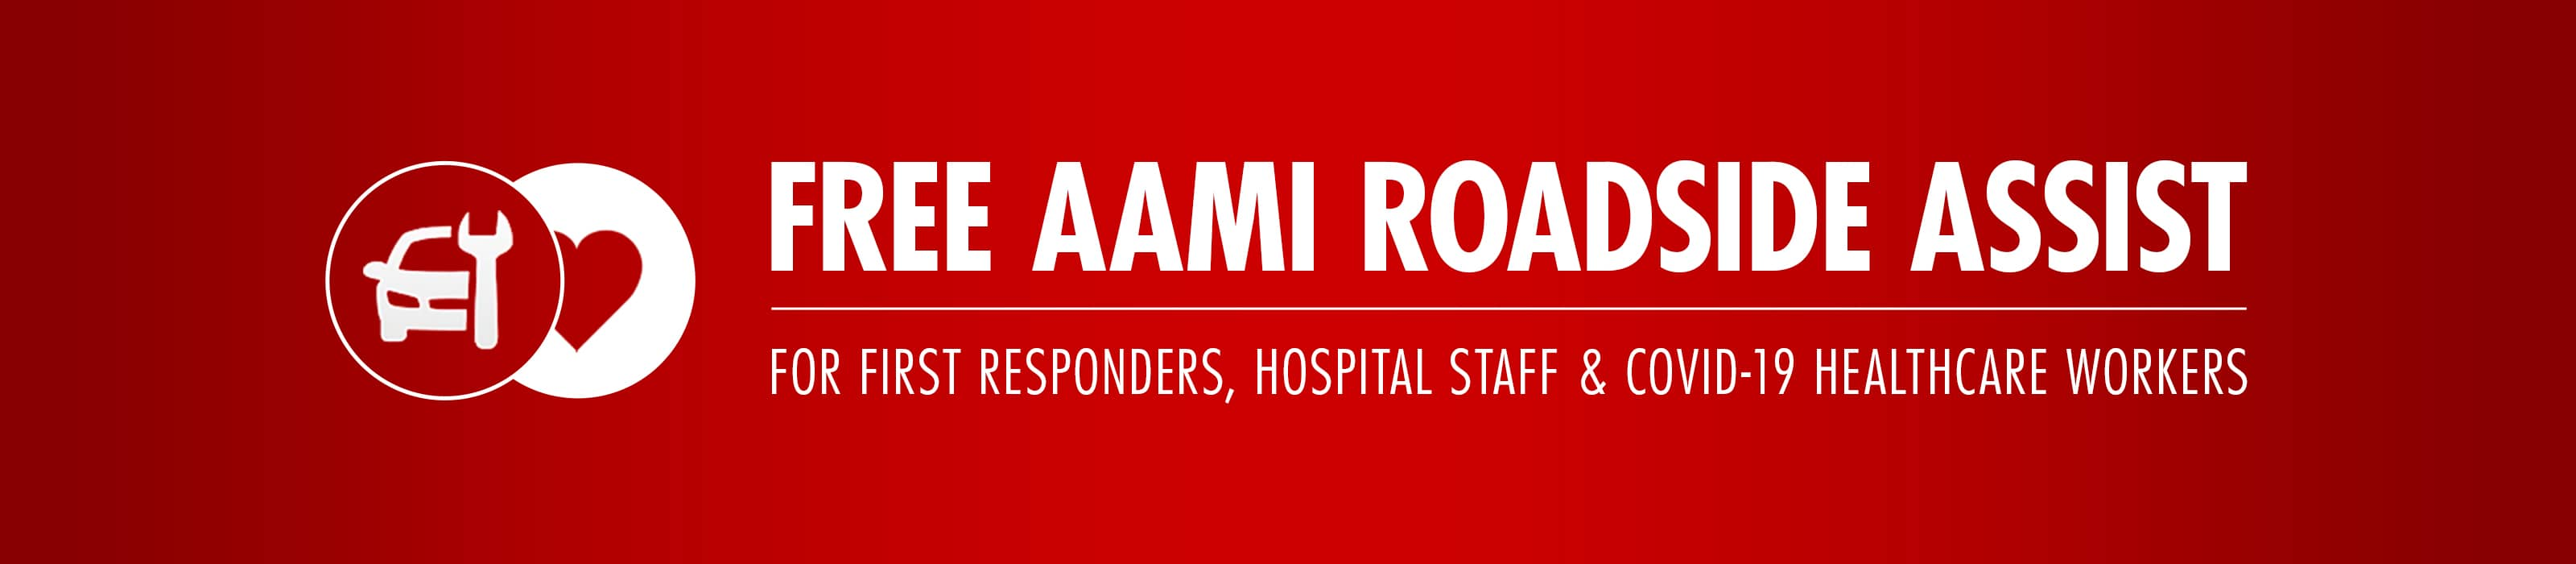 Free AAMI Roadside Assist for doctors, nurses, hospital staff and first responders